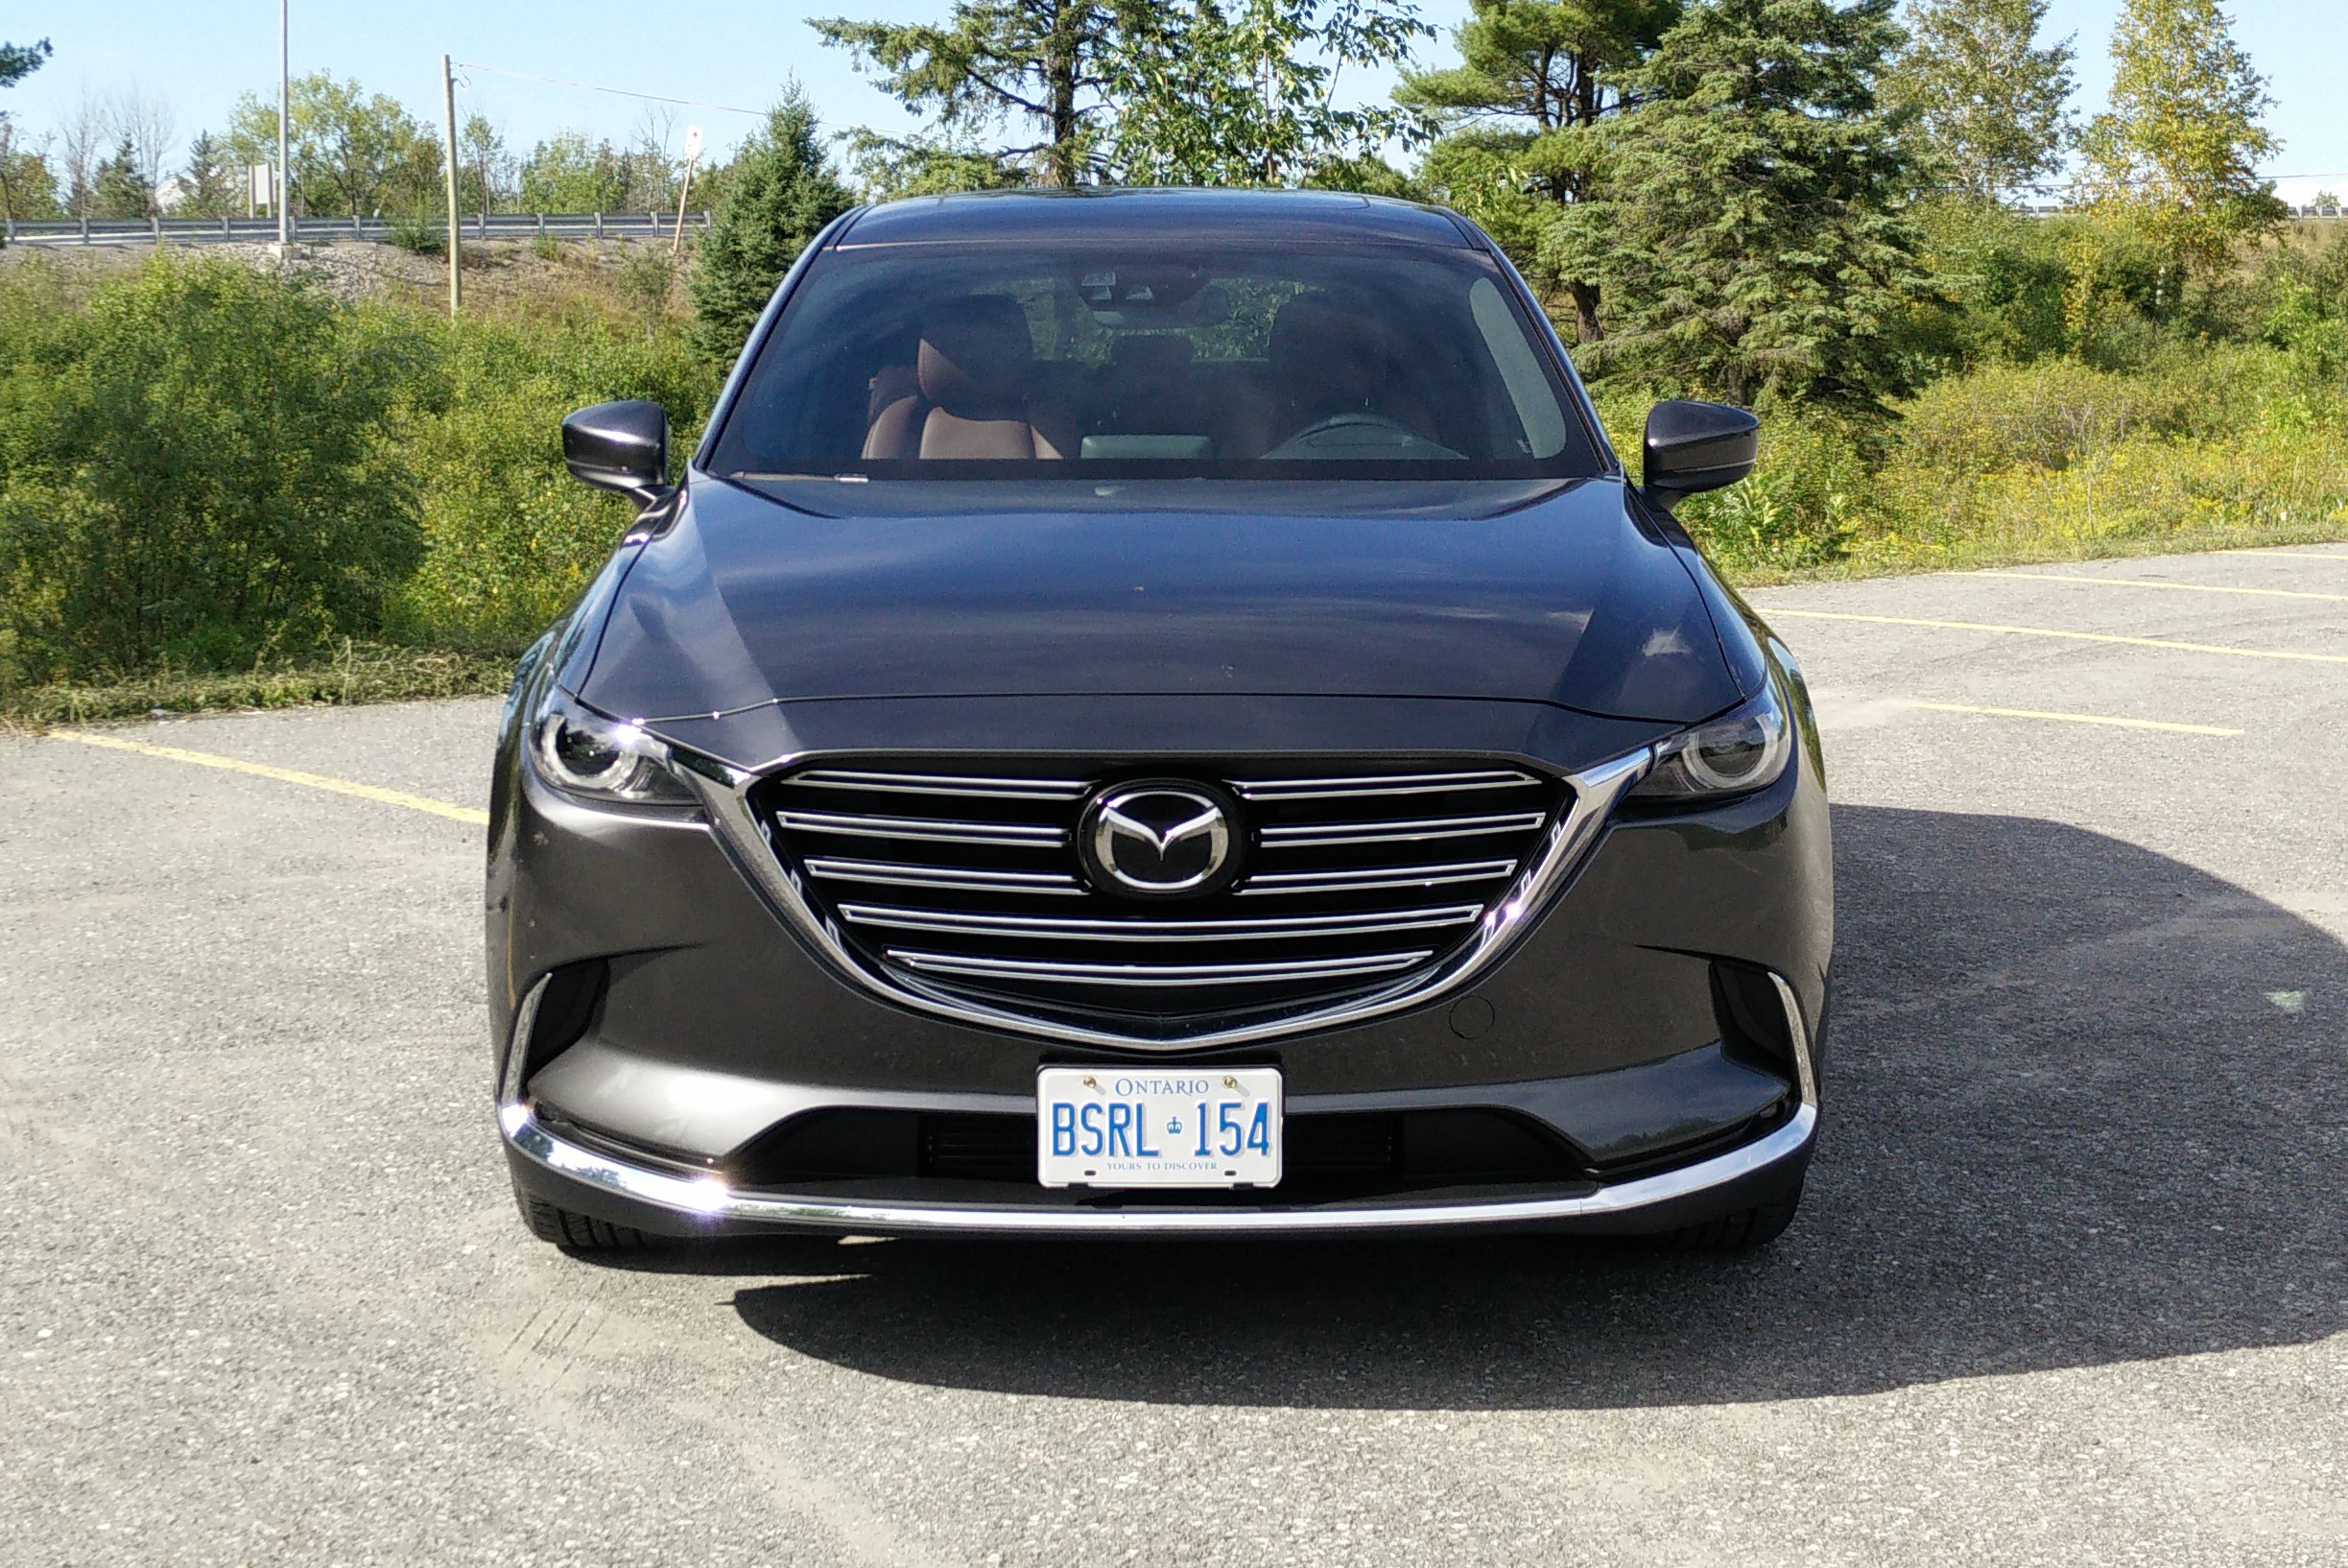 2016 mazda cx 9. Black Bedroom Furniture Sets. Home Design Ideas